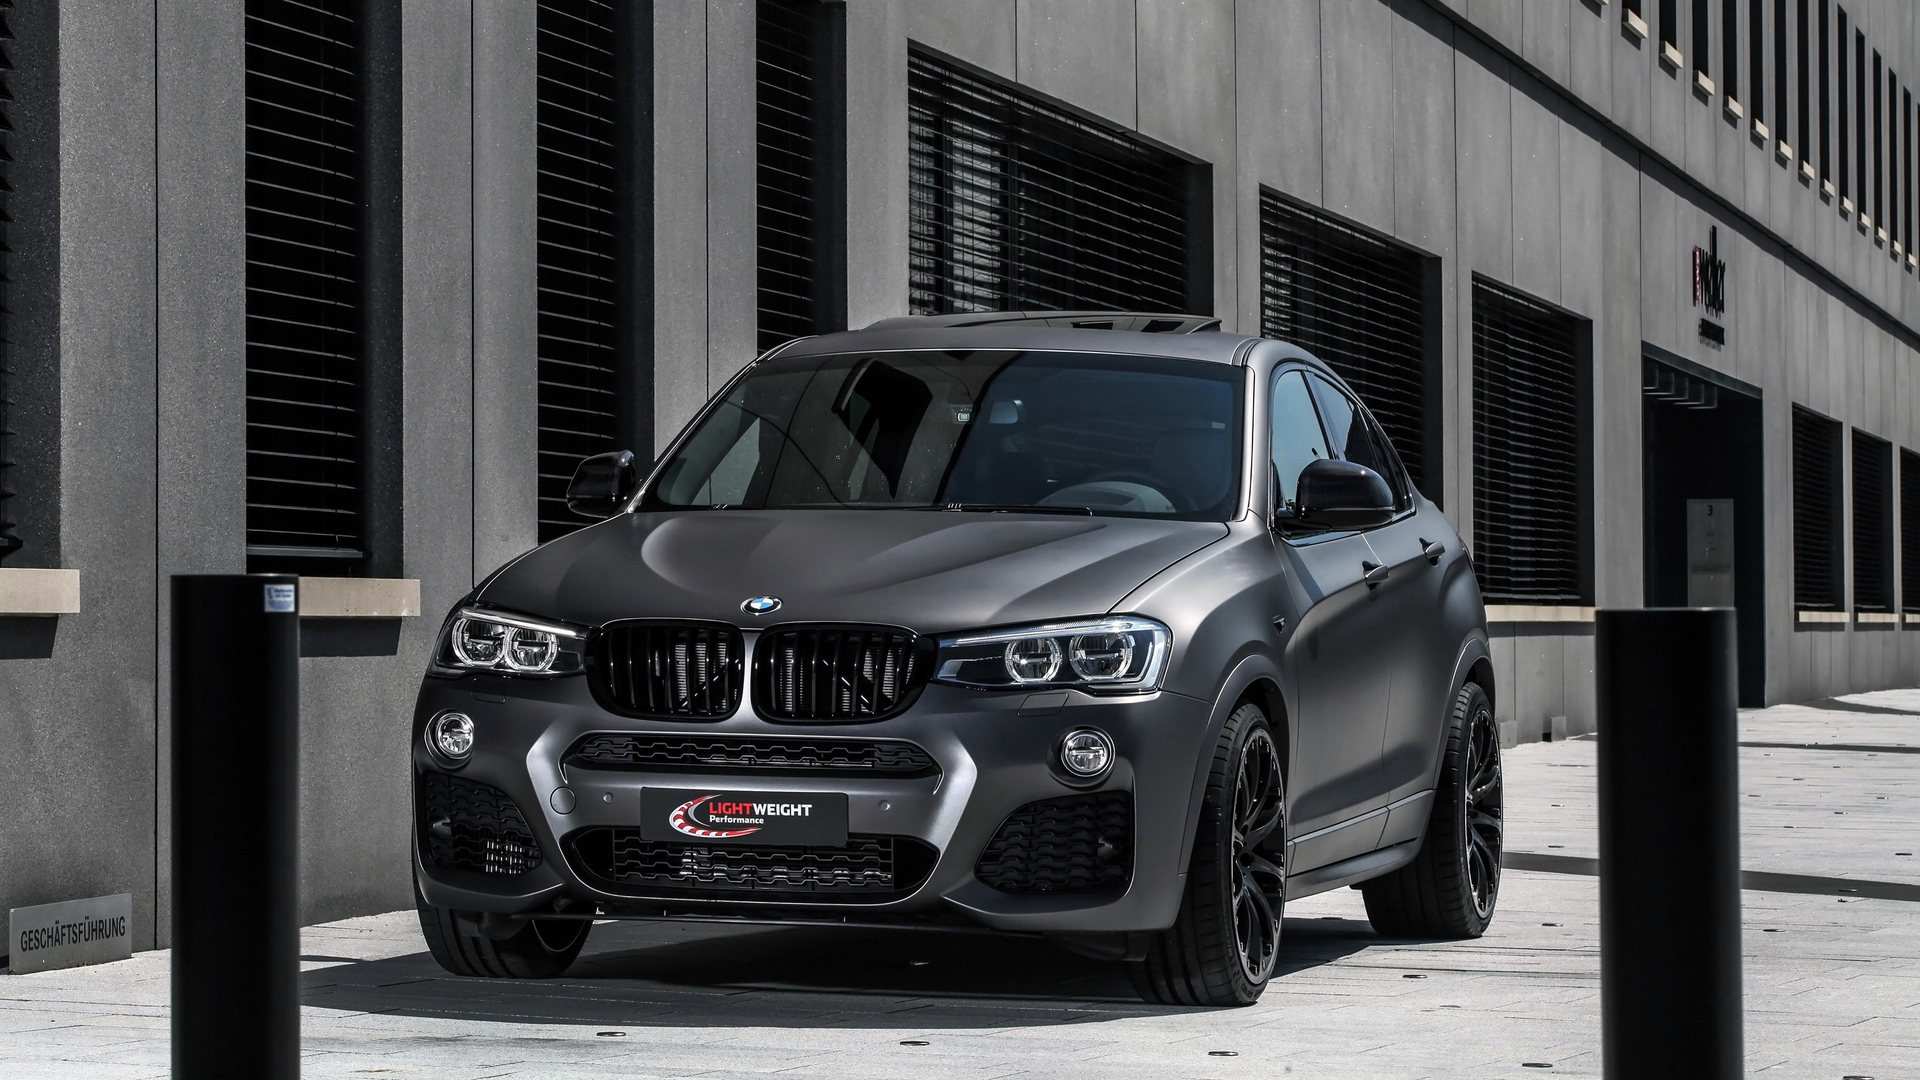 1920x1080 - BMW X4 Wallpapers 19